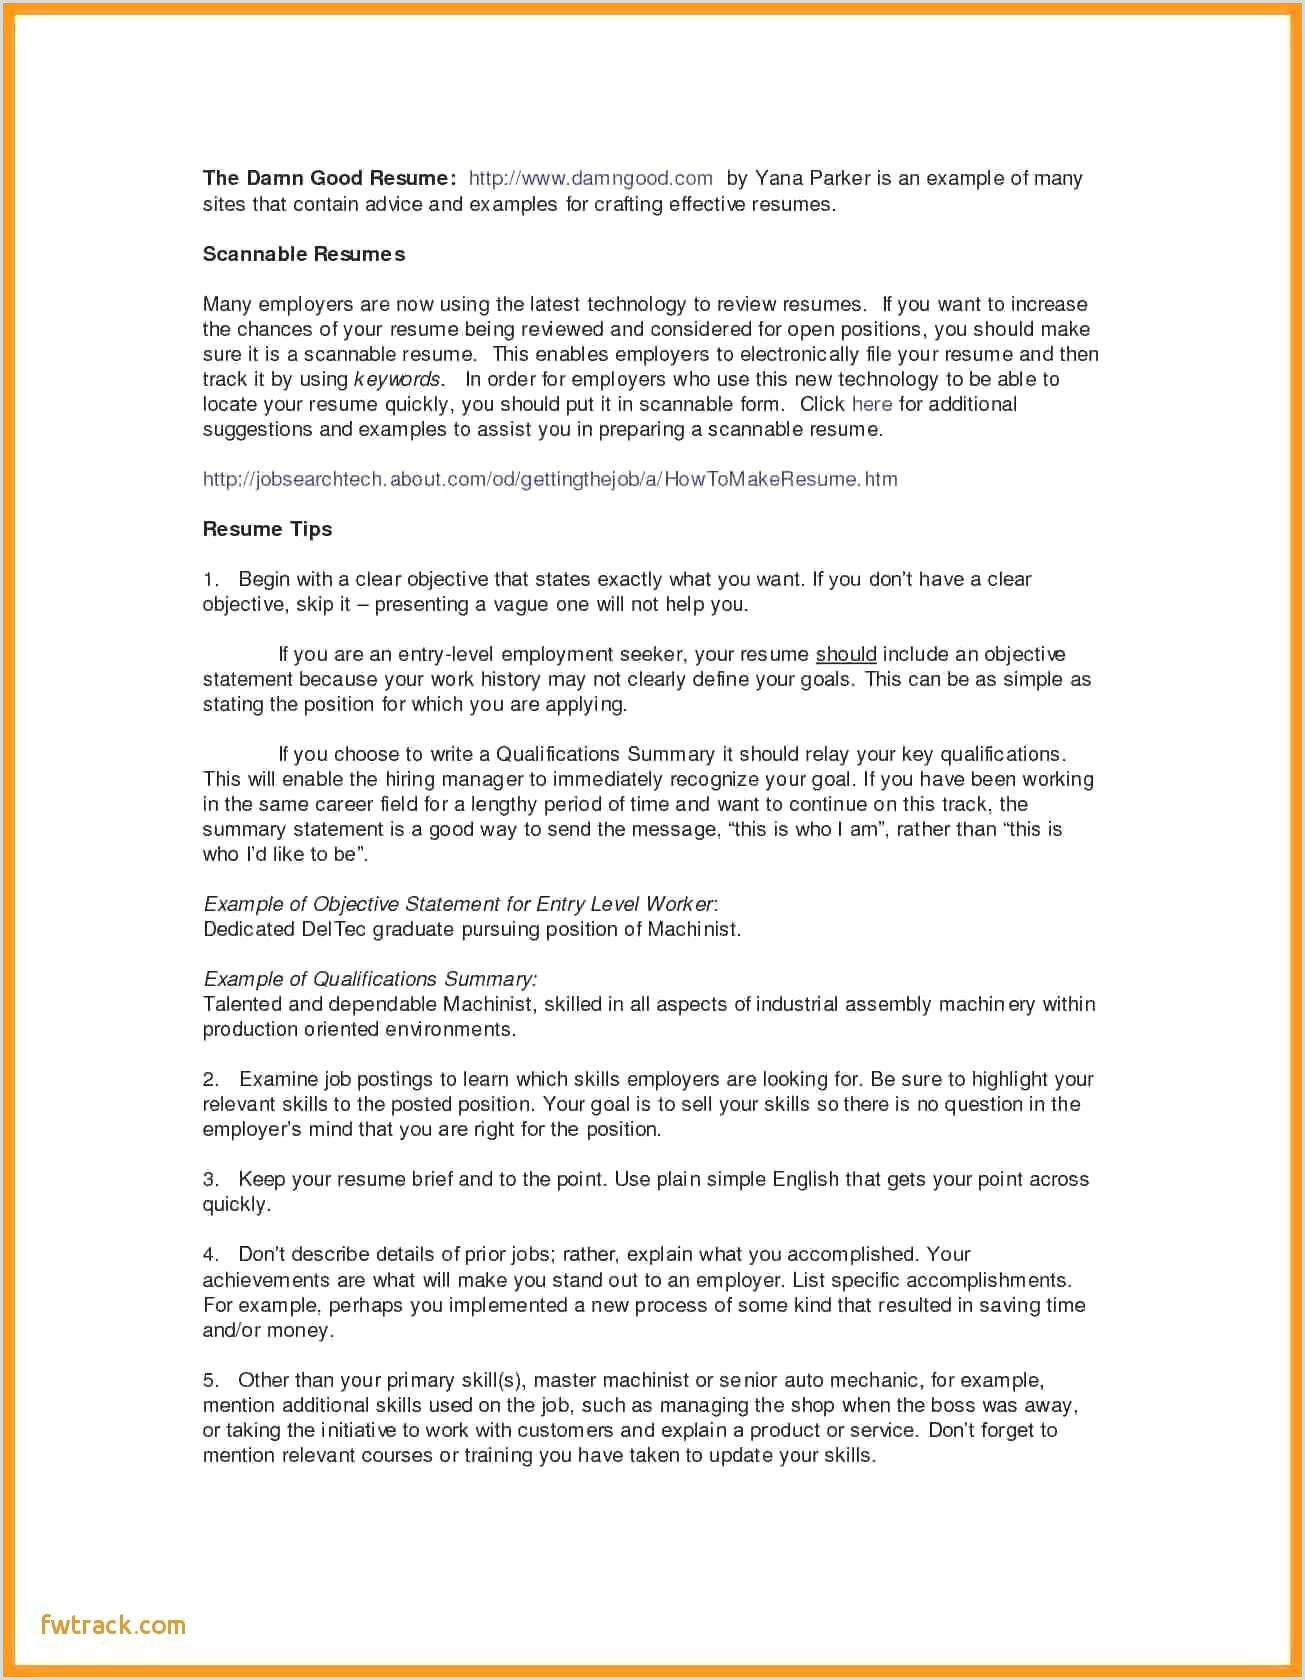 Resume for Hvac Technician Hvac Resumes Samples Sample Hvac Resume Samples Hvac